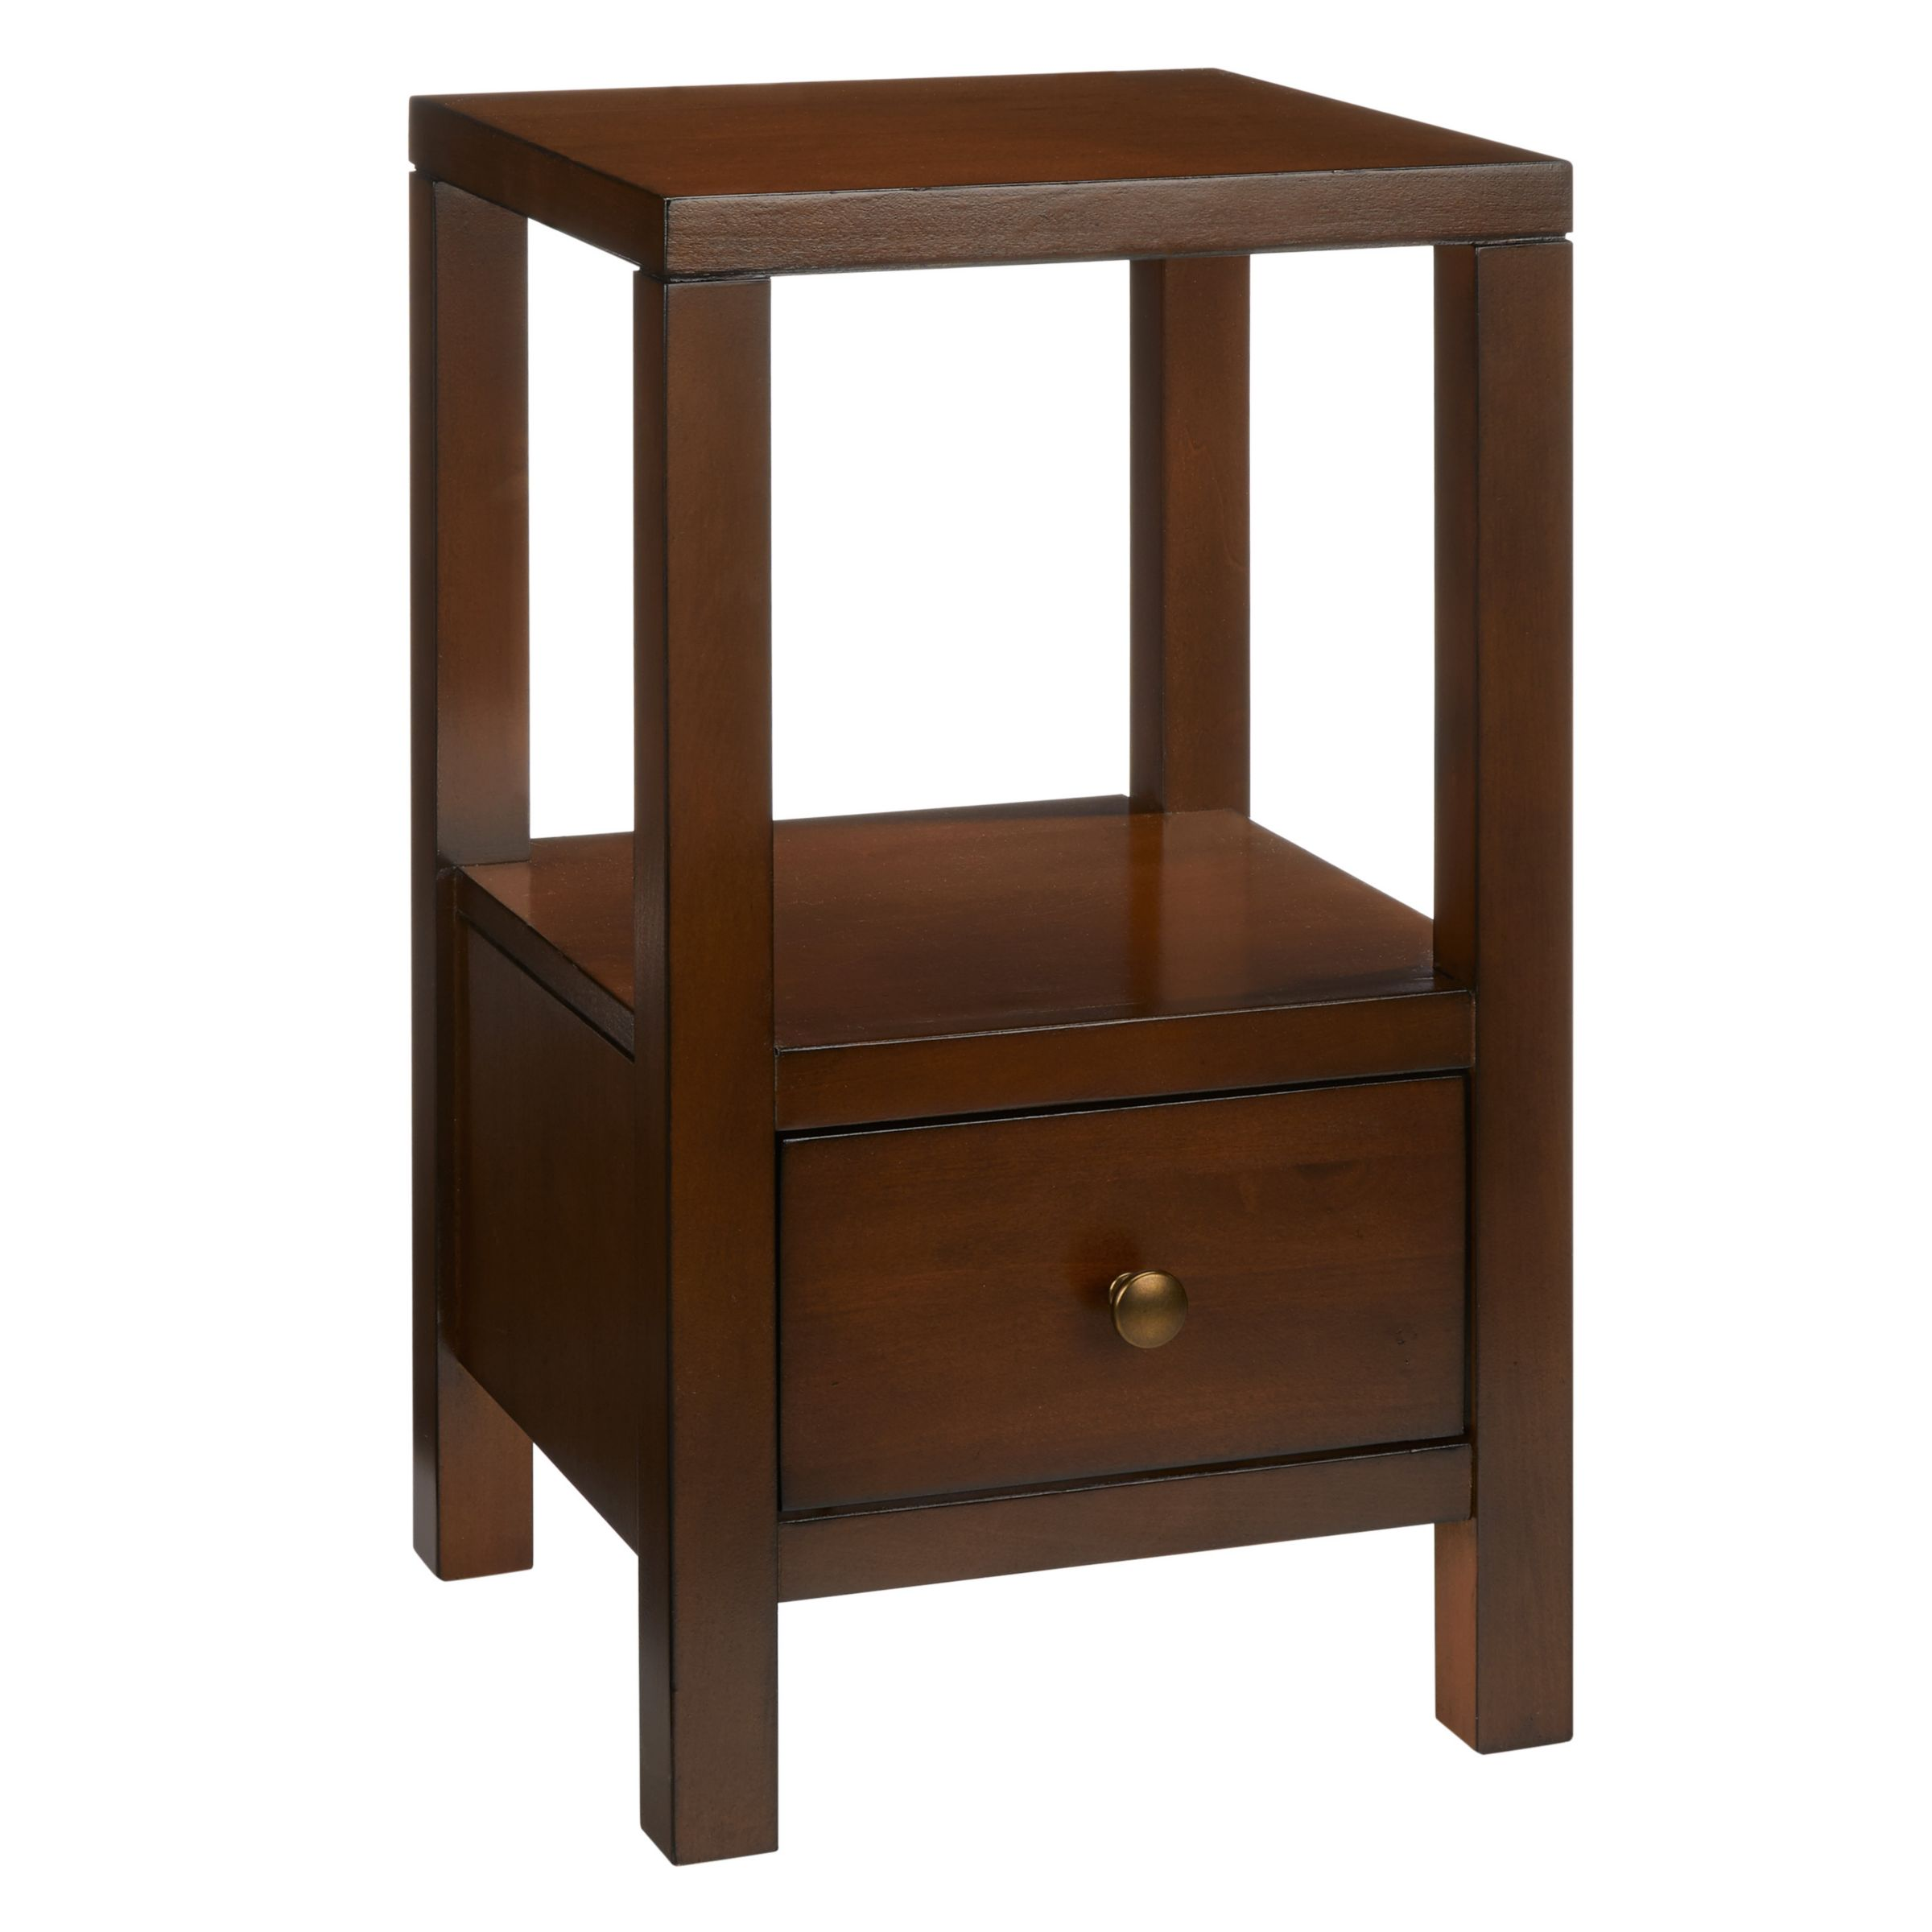 John Lewis Partners Medan 1 Drawer Bedside Table Dark Wood